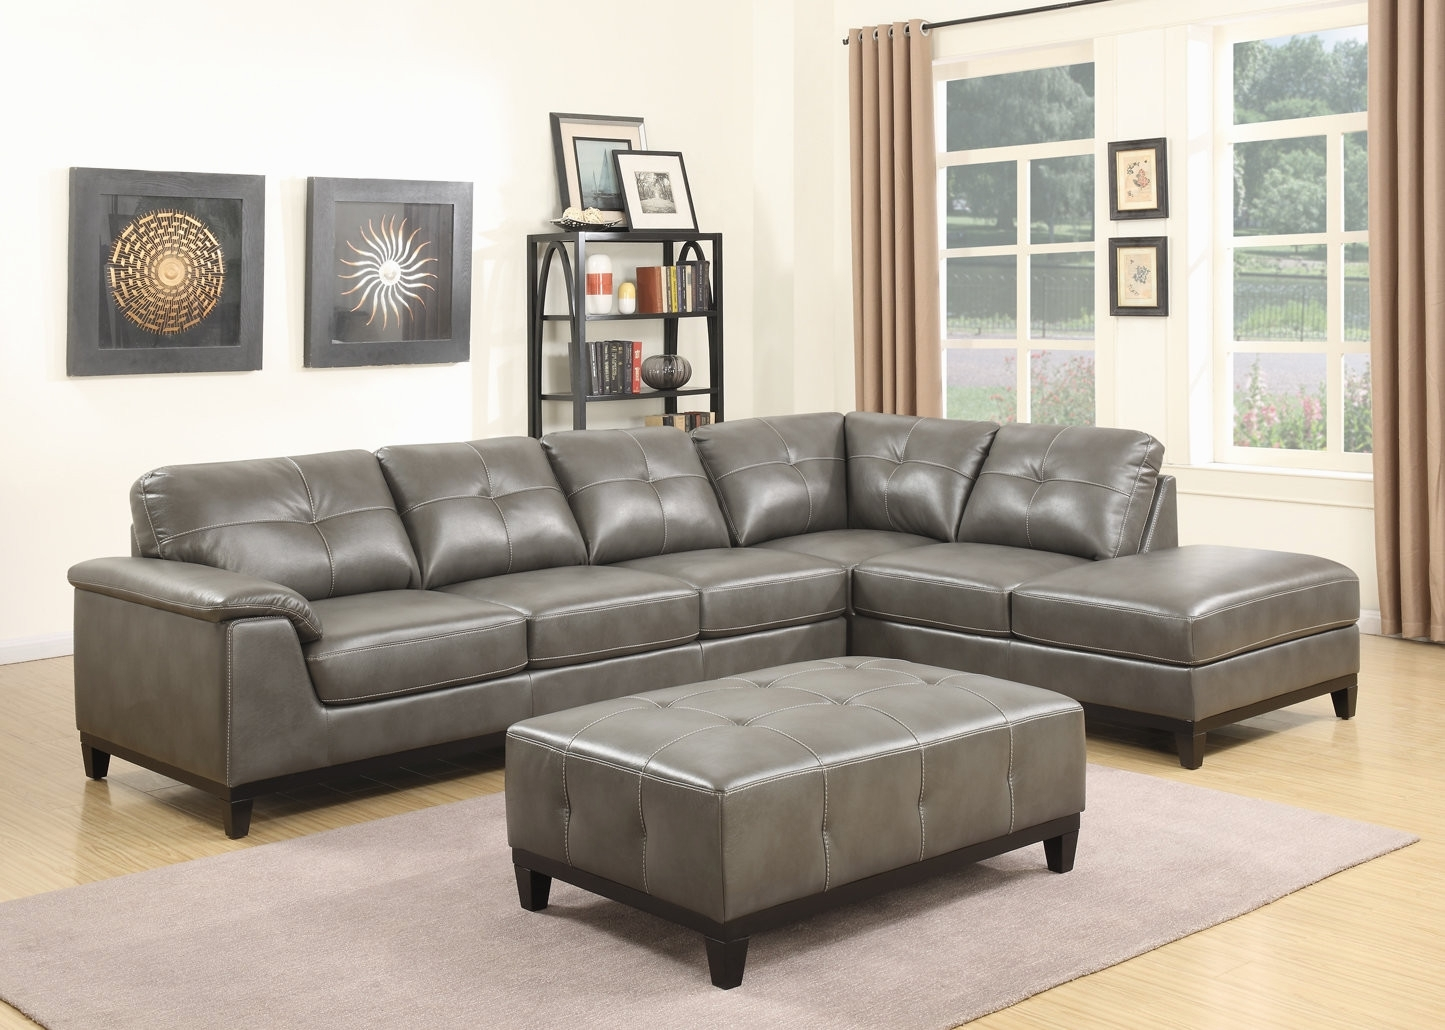 Living Room Sofa With Chaise Beautiful Trent Austin Design Lonato Pertaining To Aquarius Light Grey 2 Piece Sectionals With Raf Chaise (View 16 of 25)